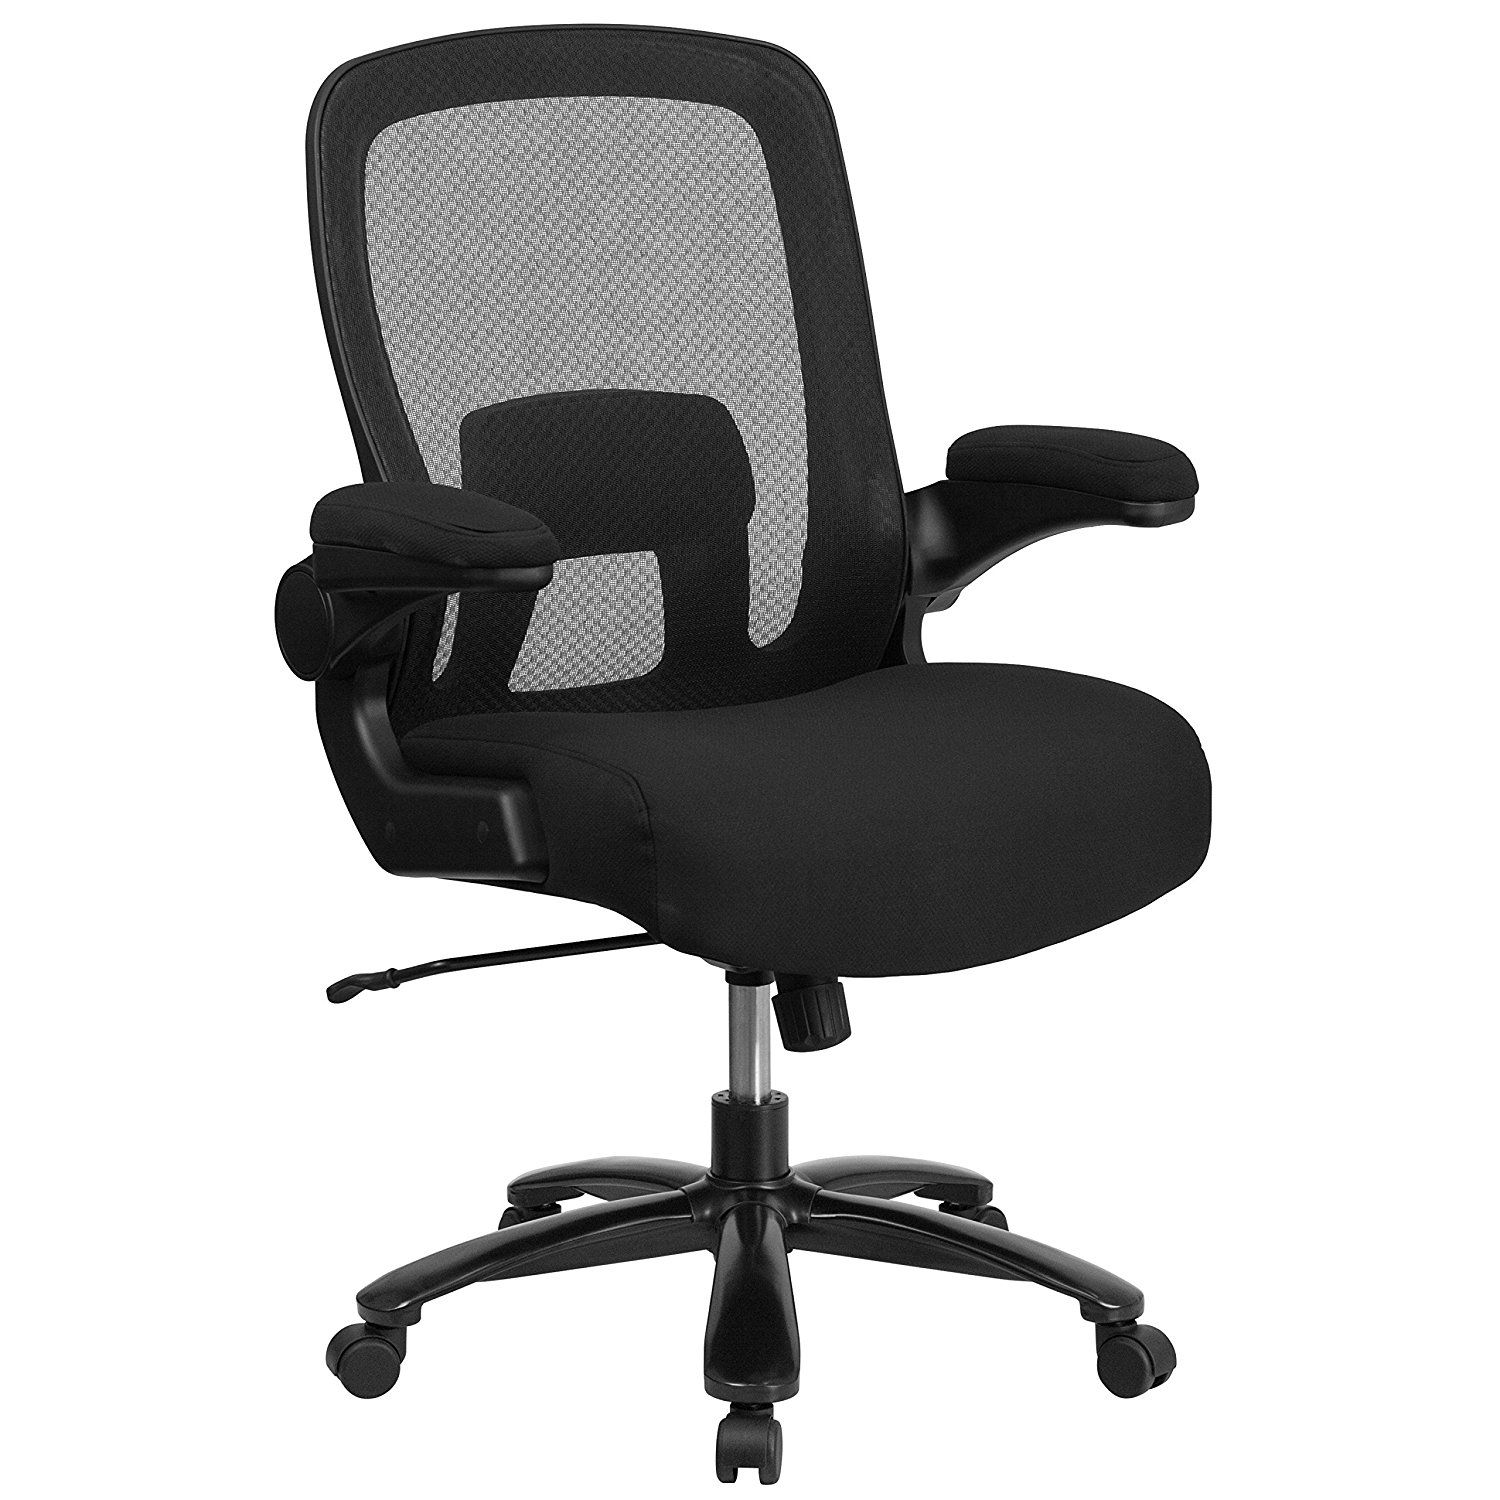 Ergonomic Office Chair 300 Lbs